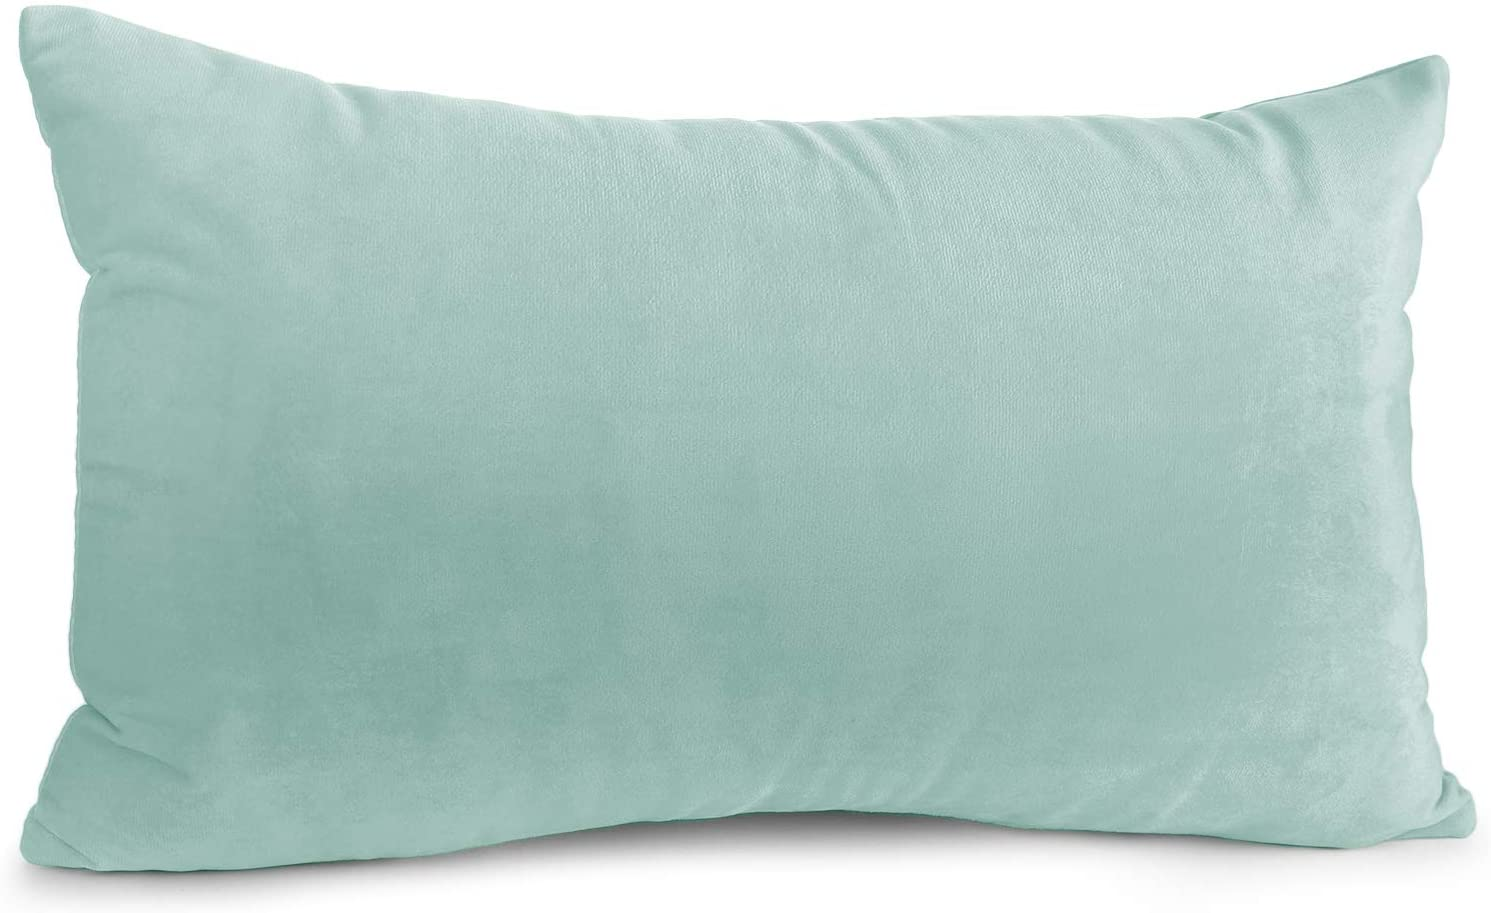 Nestl Bedding Throw Pillow Covers, Cozy Velvet Decorative Pillow Covers 12x20 Inches, Soft Solid Couch Pillow Covers for Sofa, Bed and Car - Mint